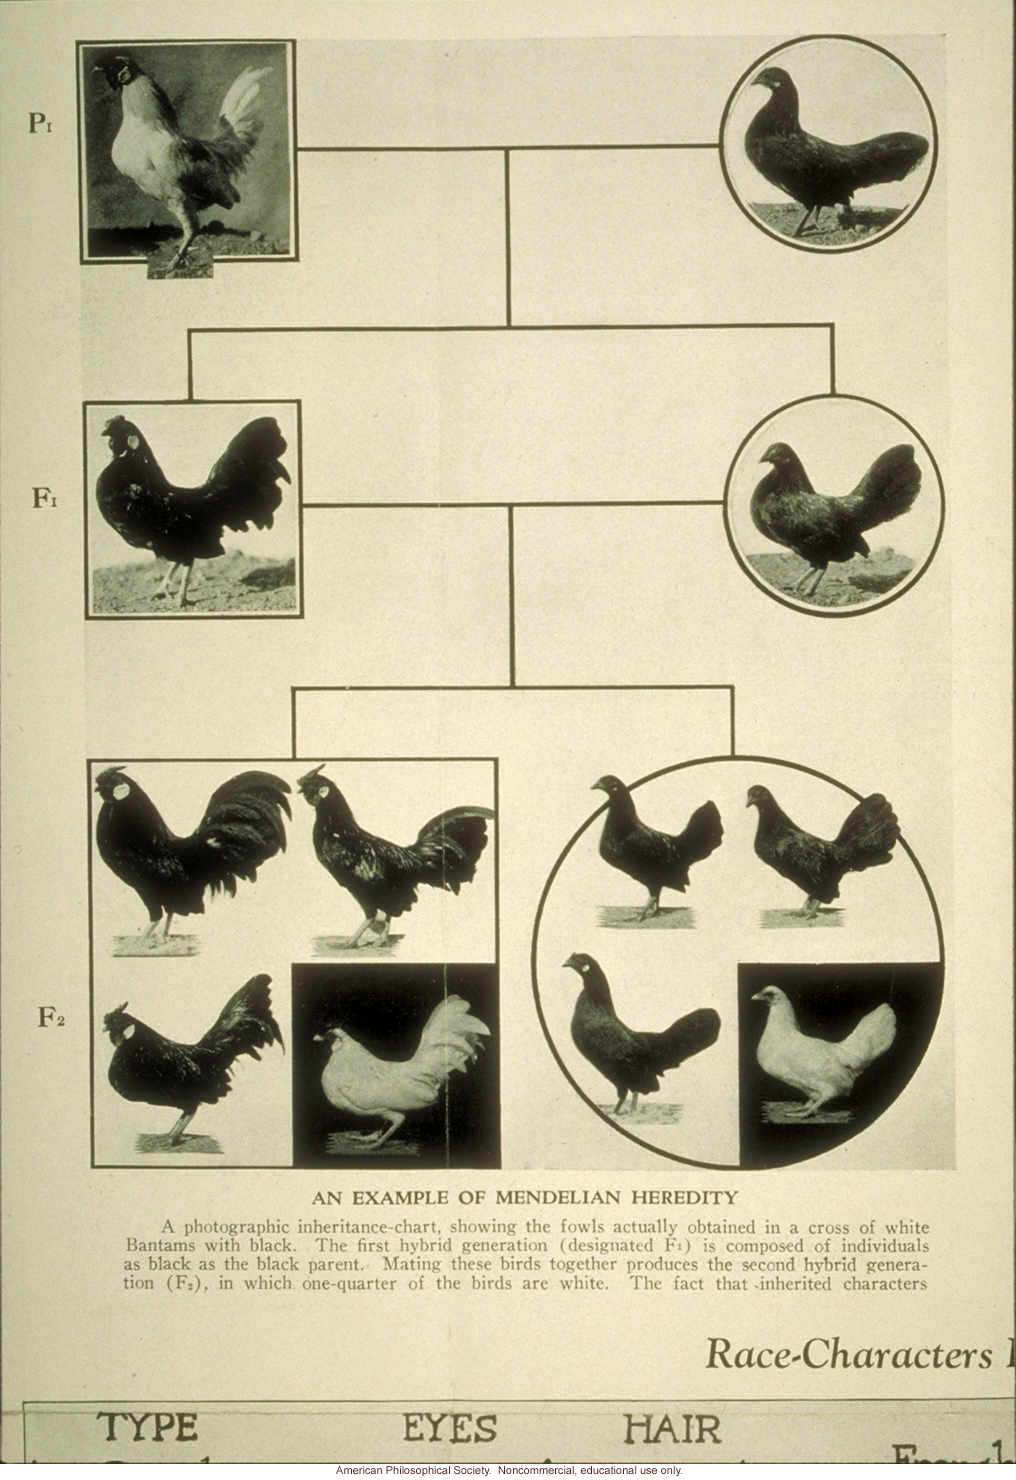 &quote;An example of Mendelian heredity,&quote; chicken breeding